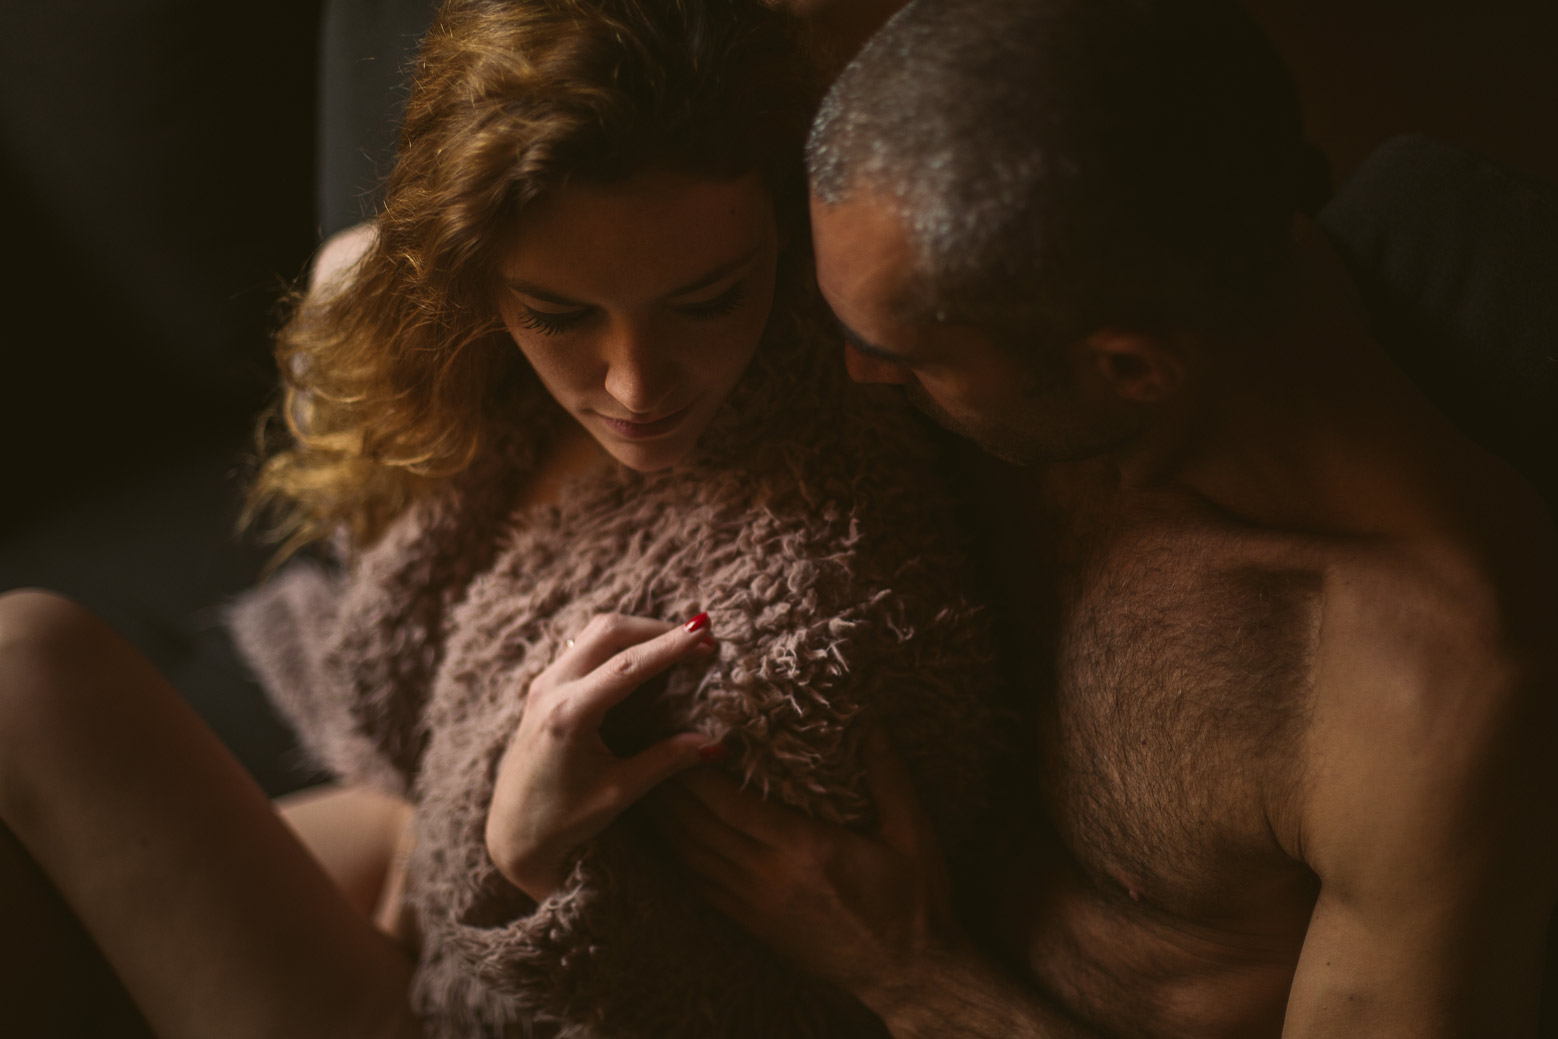 Séance photo intime en couple à Lyon